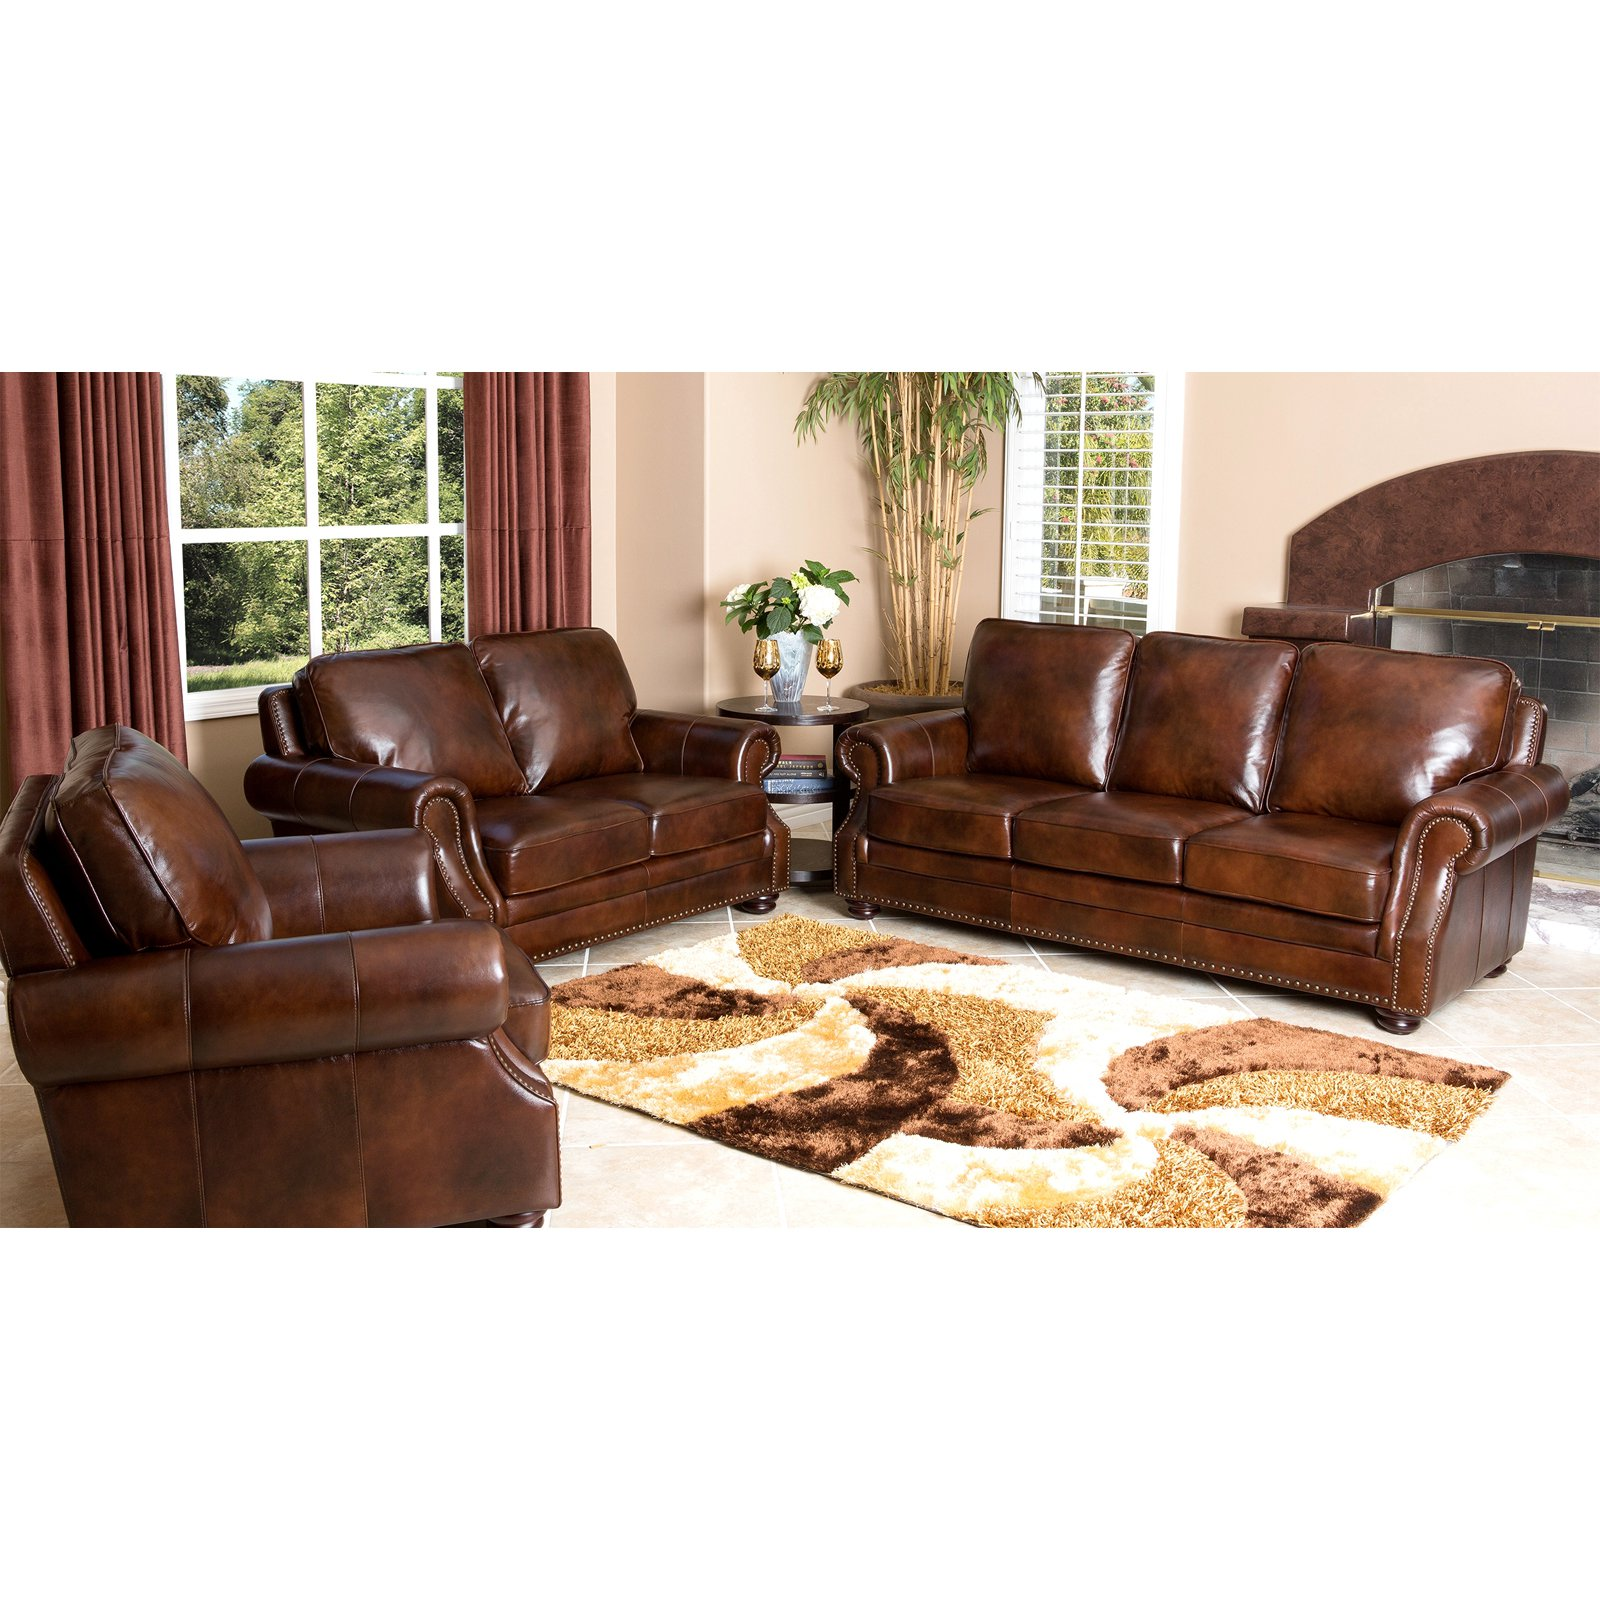 Phenomenal 3 Piece Leather Living Room Set Gmtry Best Dining Table And Chair Ideas Images Gmtryco